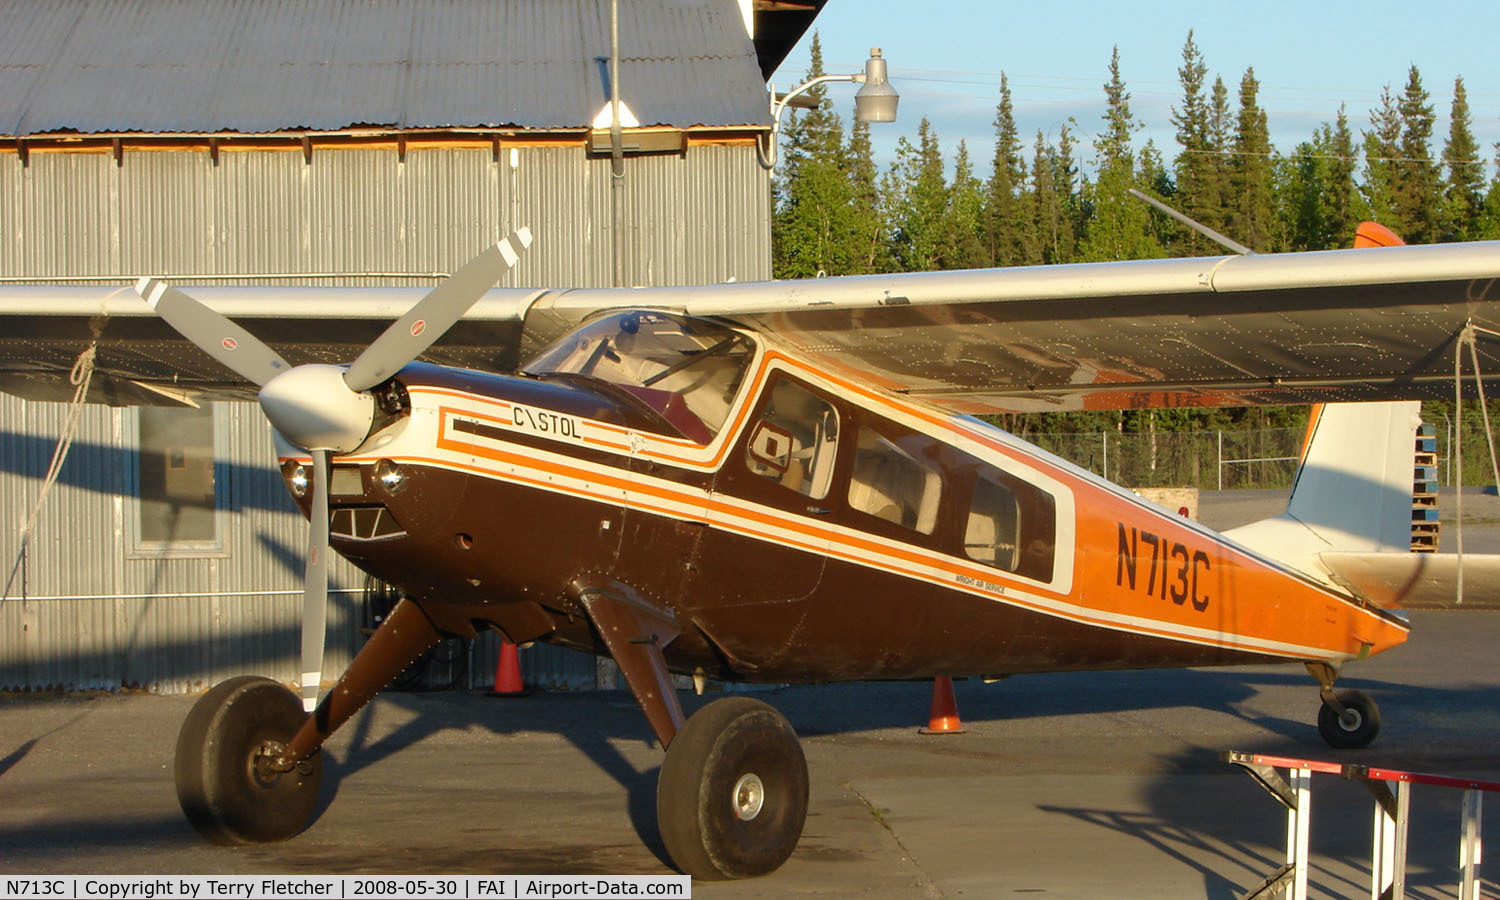 N713C, 1970 Helio H-295-1400 Super Courier C/N 1438, Helio H-295 of Wright Air services on Fairbanks East ramp